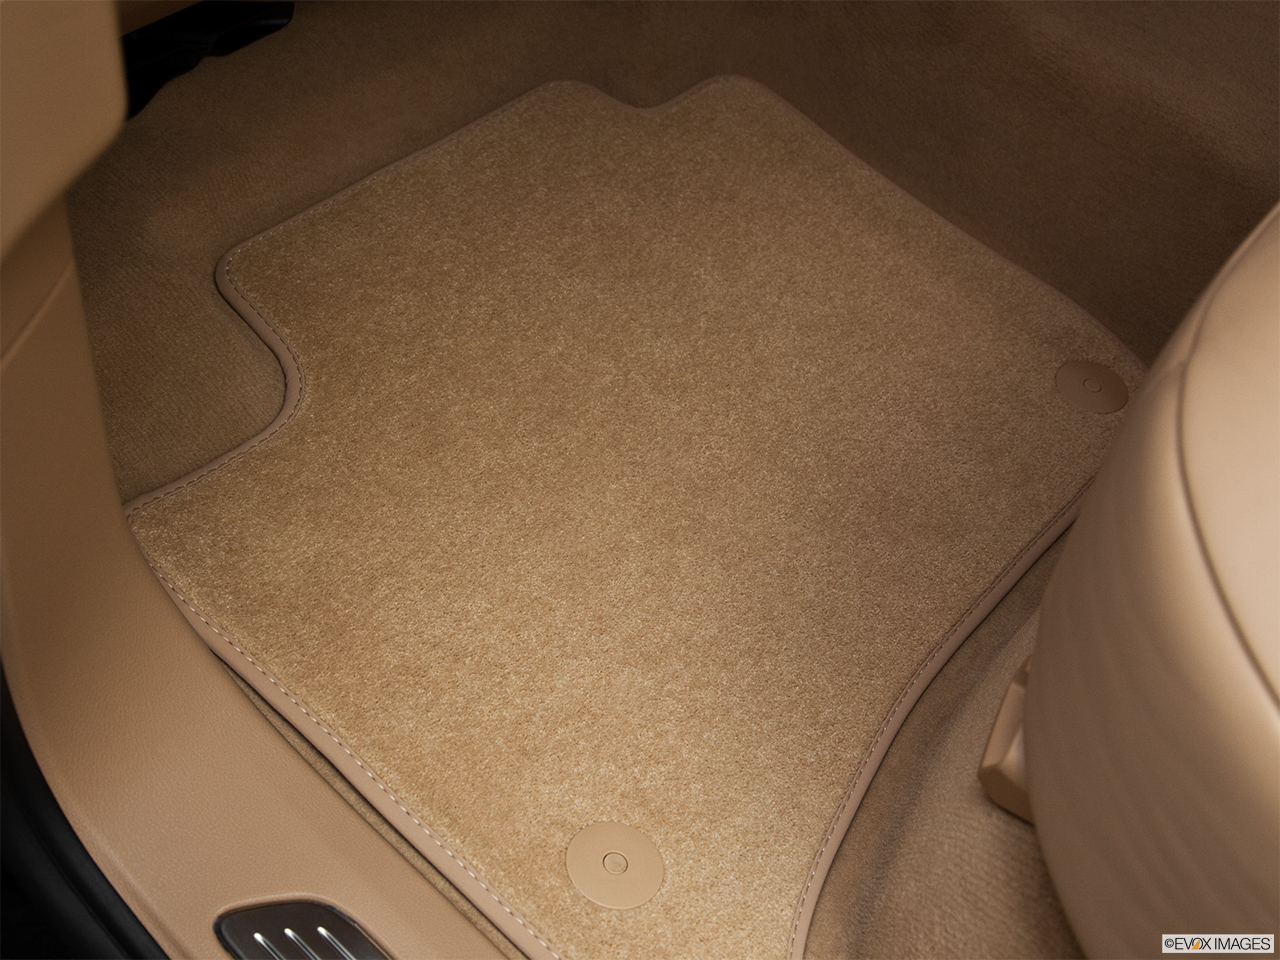 2012 Porsche Cayenne Hybrid Hybrid S Rear driver's side floor mat. Mid-seat level from outside looking in.